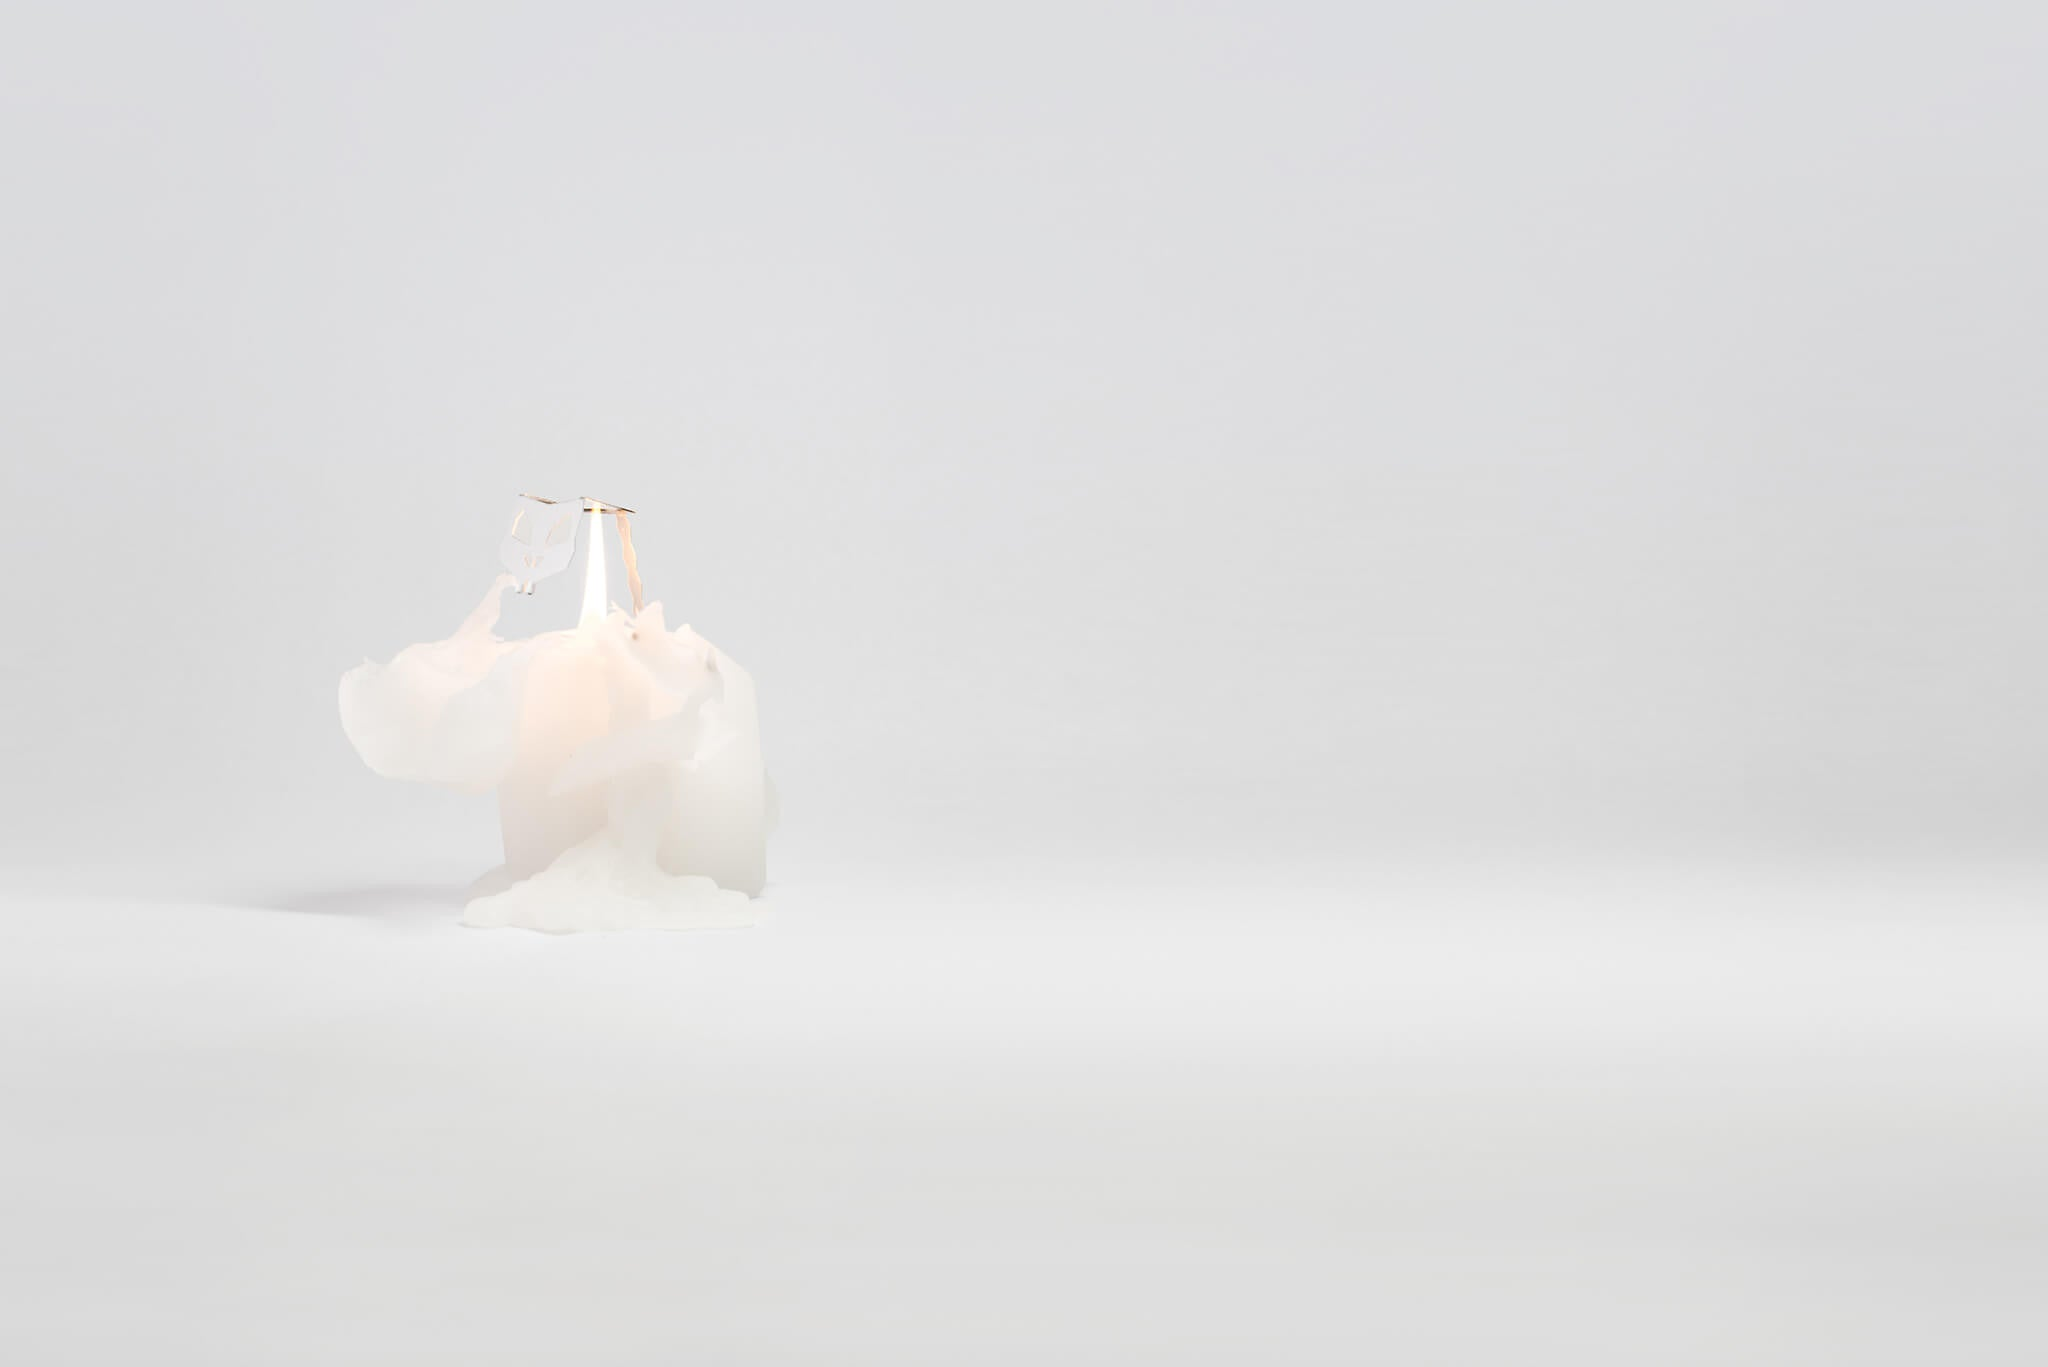 A burning white bunny candle reveals inner skeleton frame as the wax melts.